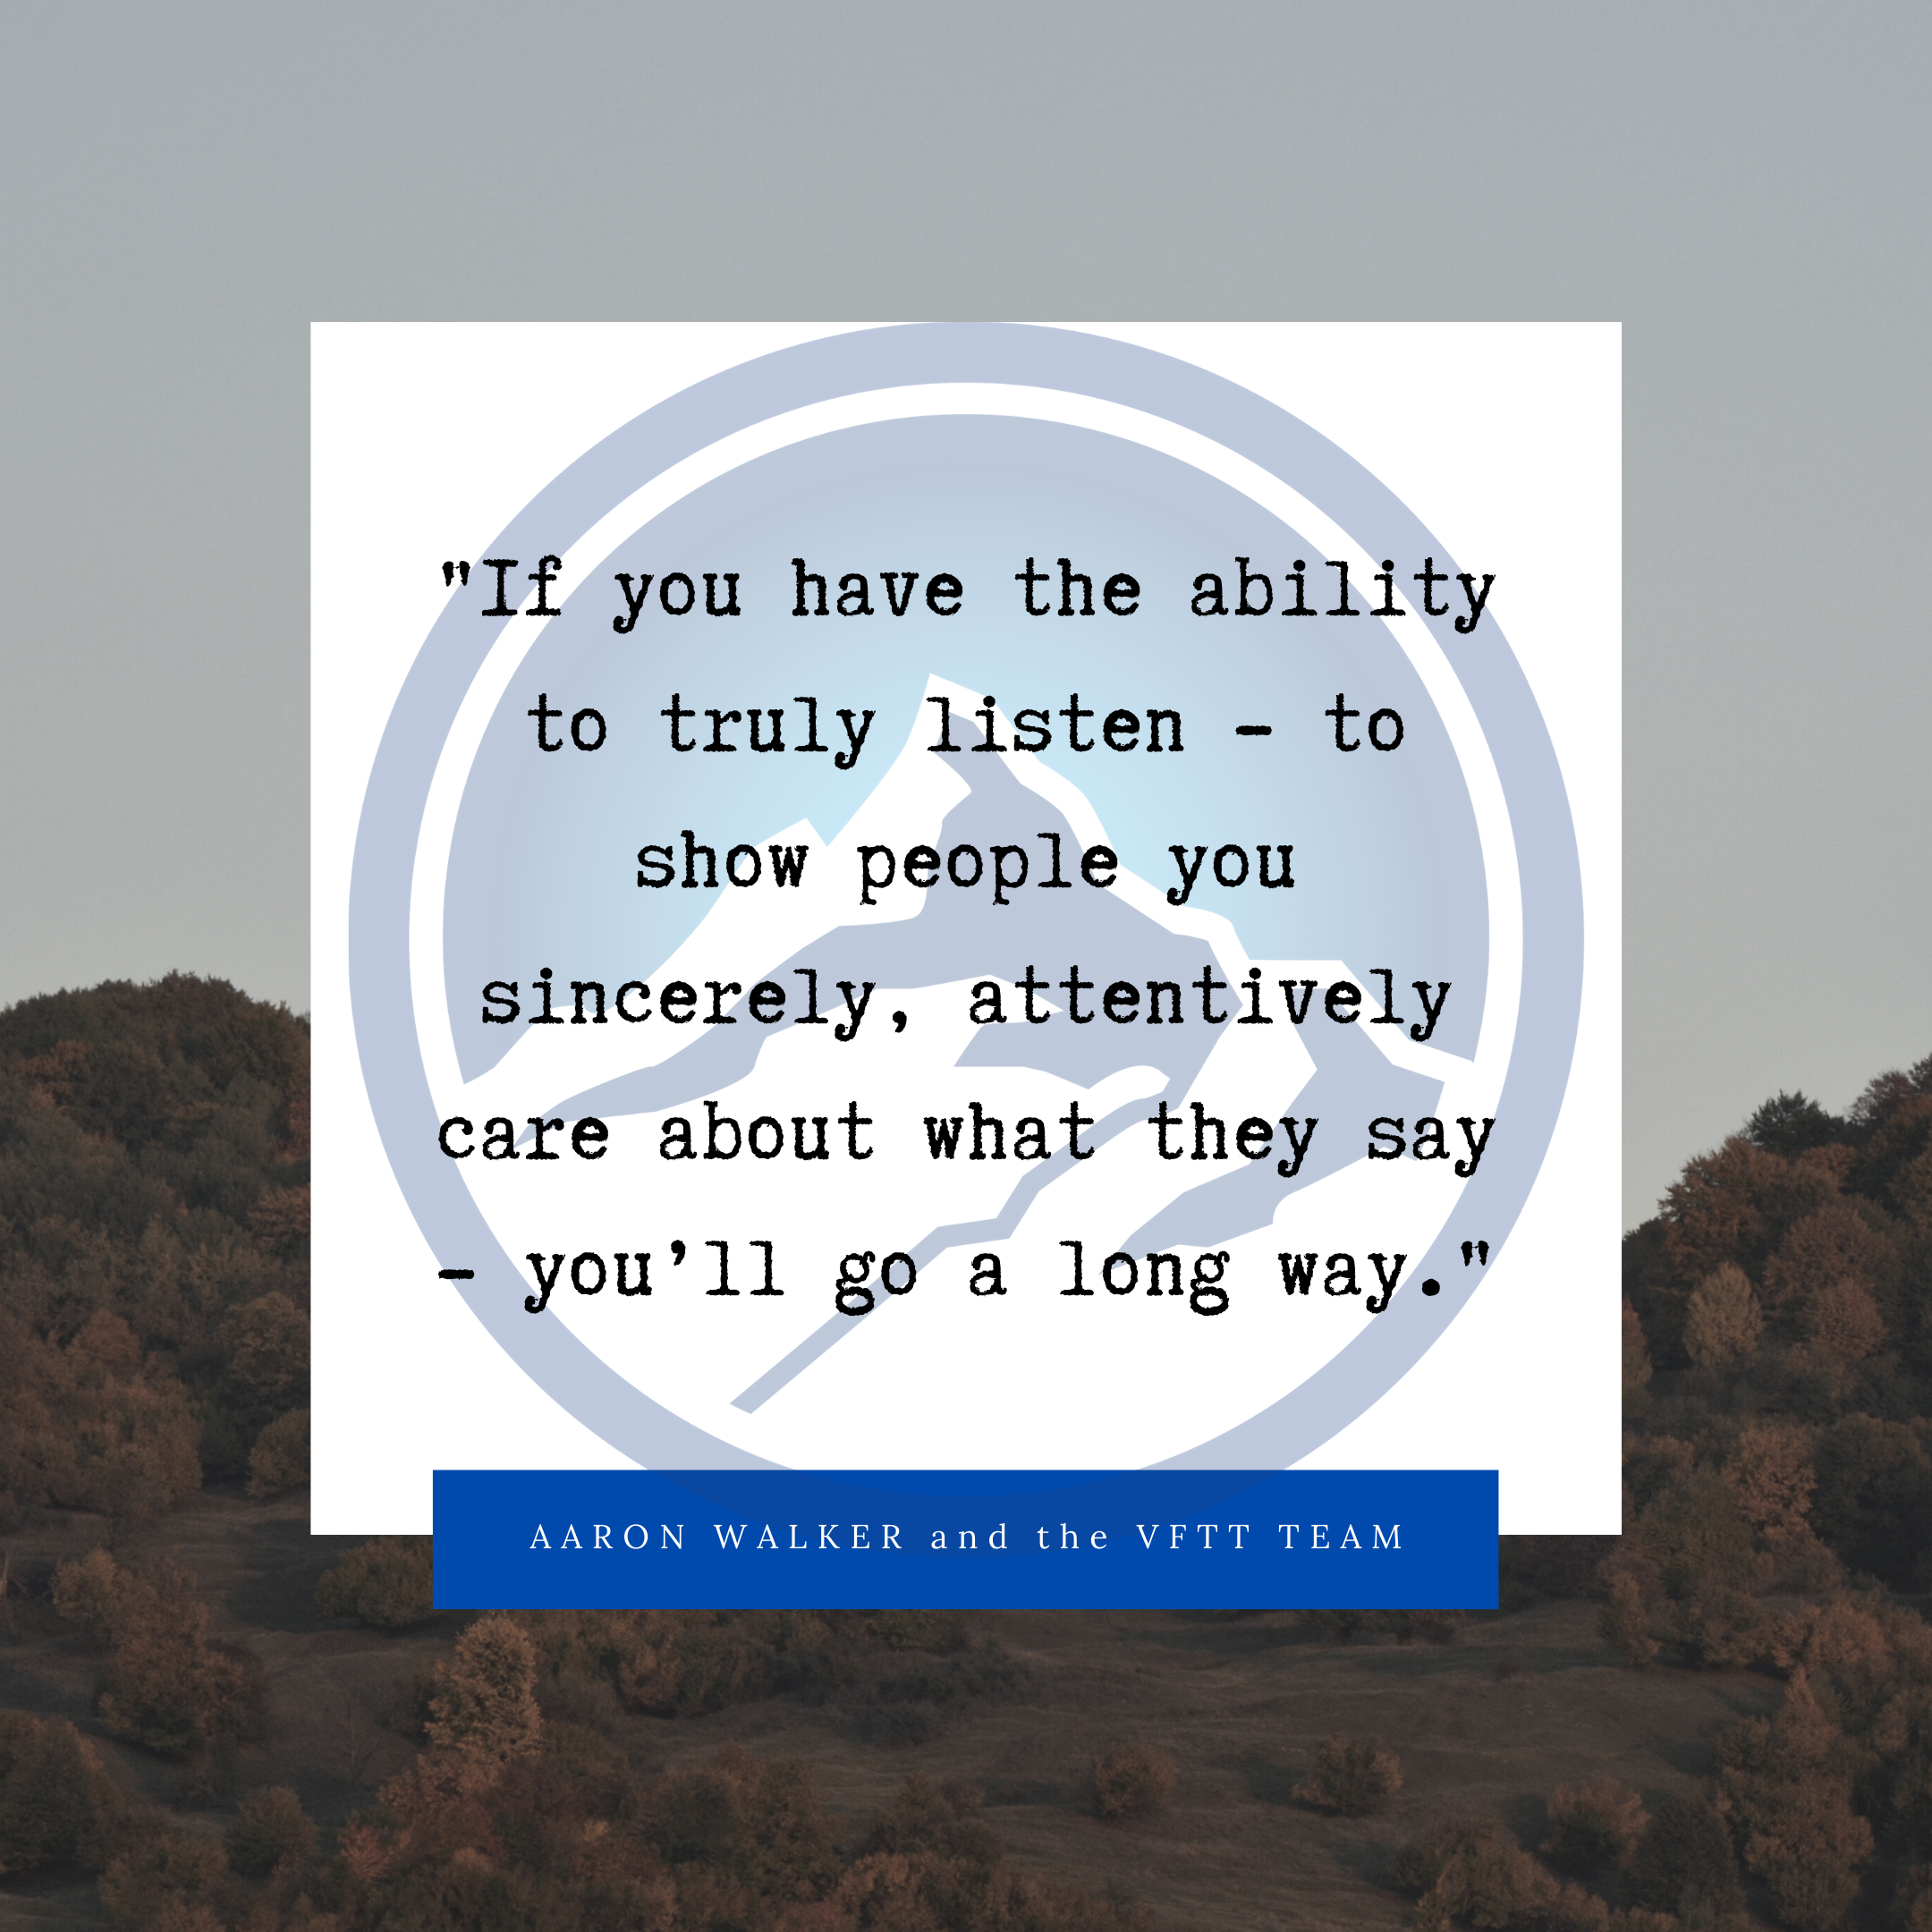 If you have the ability to truly listen - to show people you sincerely, attentively care about what they say - you'll go a long way